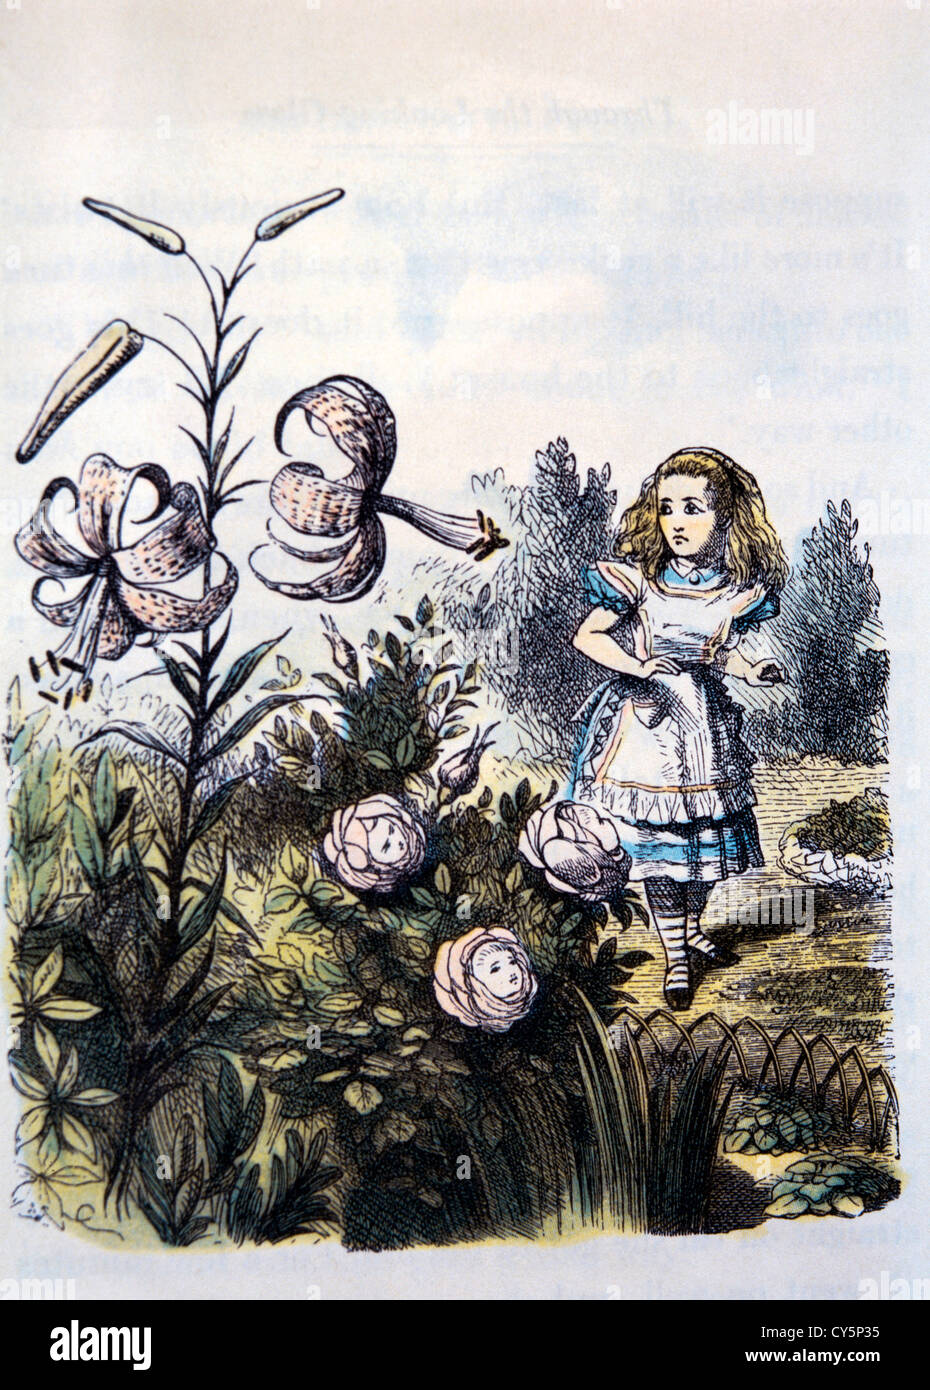 The Garden Of Live Flowers, Through the Looking Glass by Lewis Carroll, Hand-Colored Illustration, Circa 1872 - Stock Image